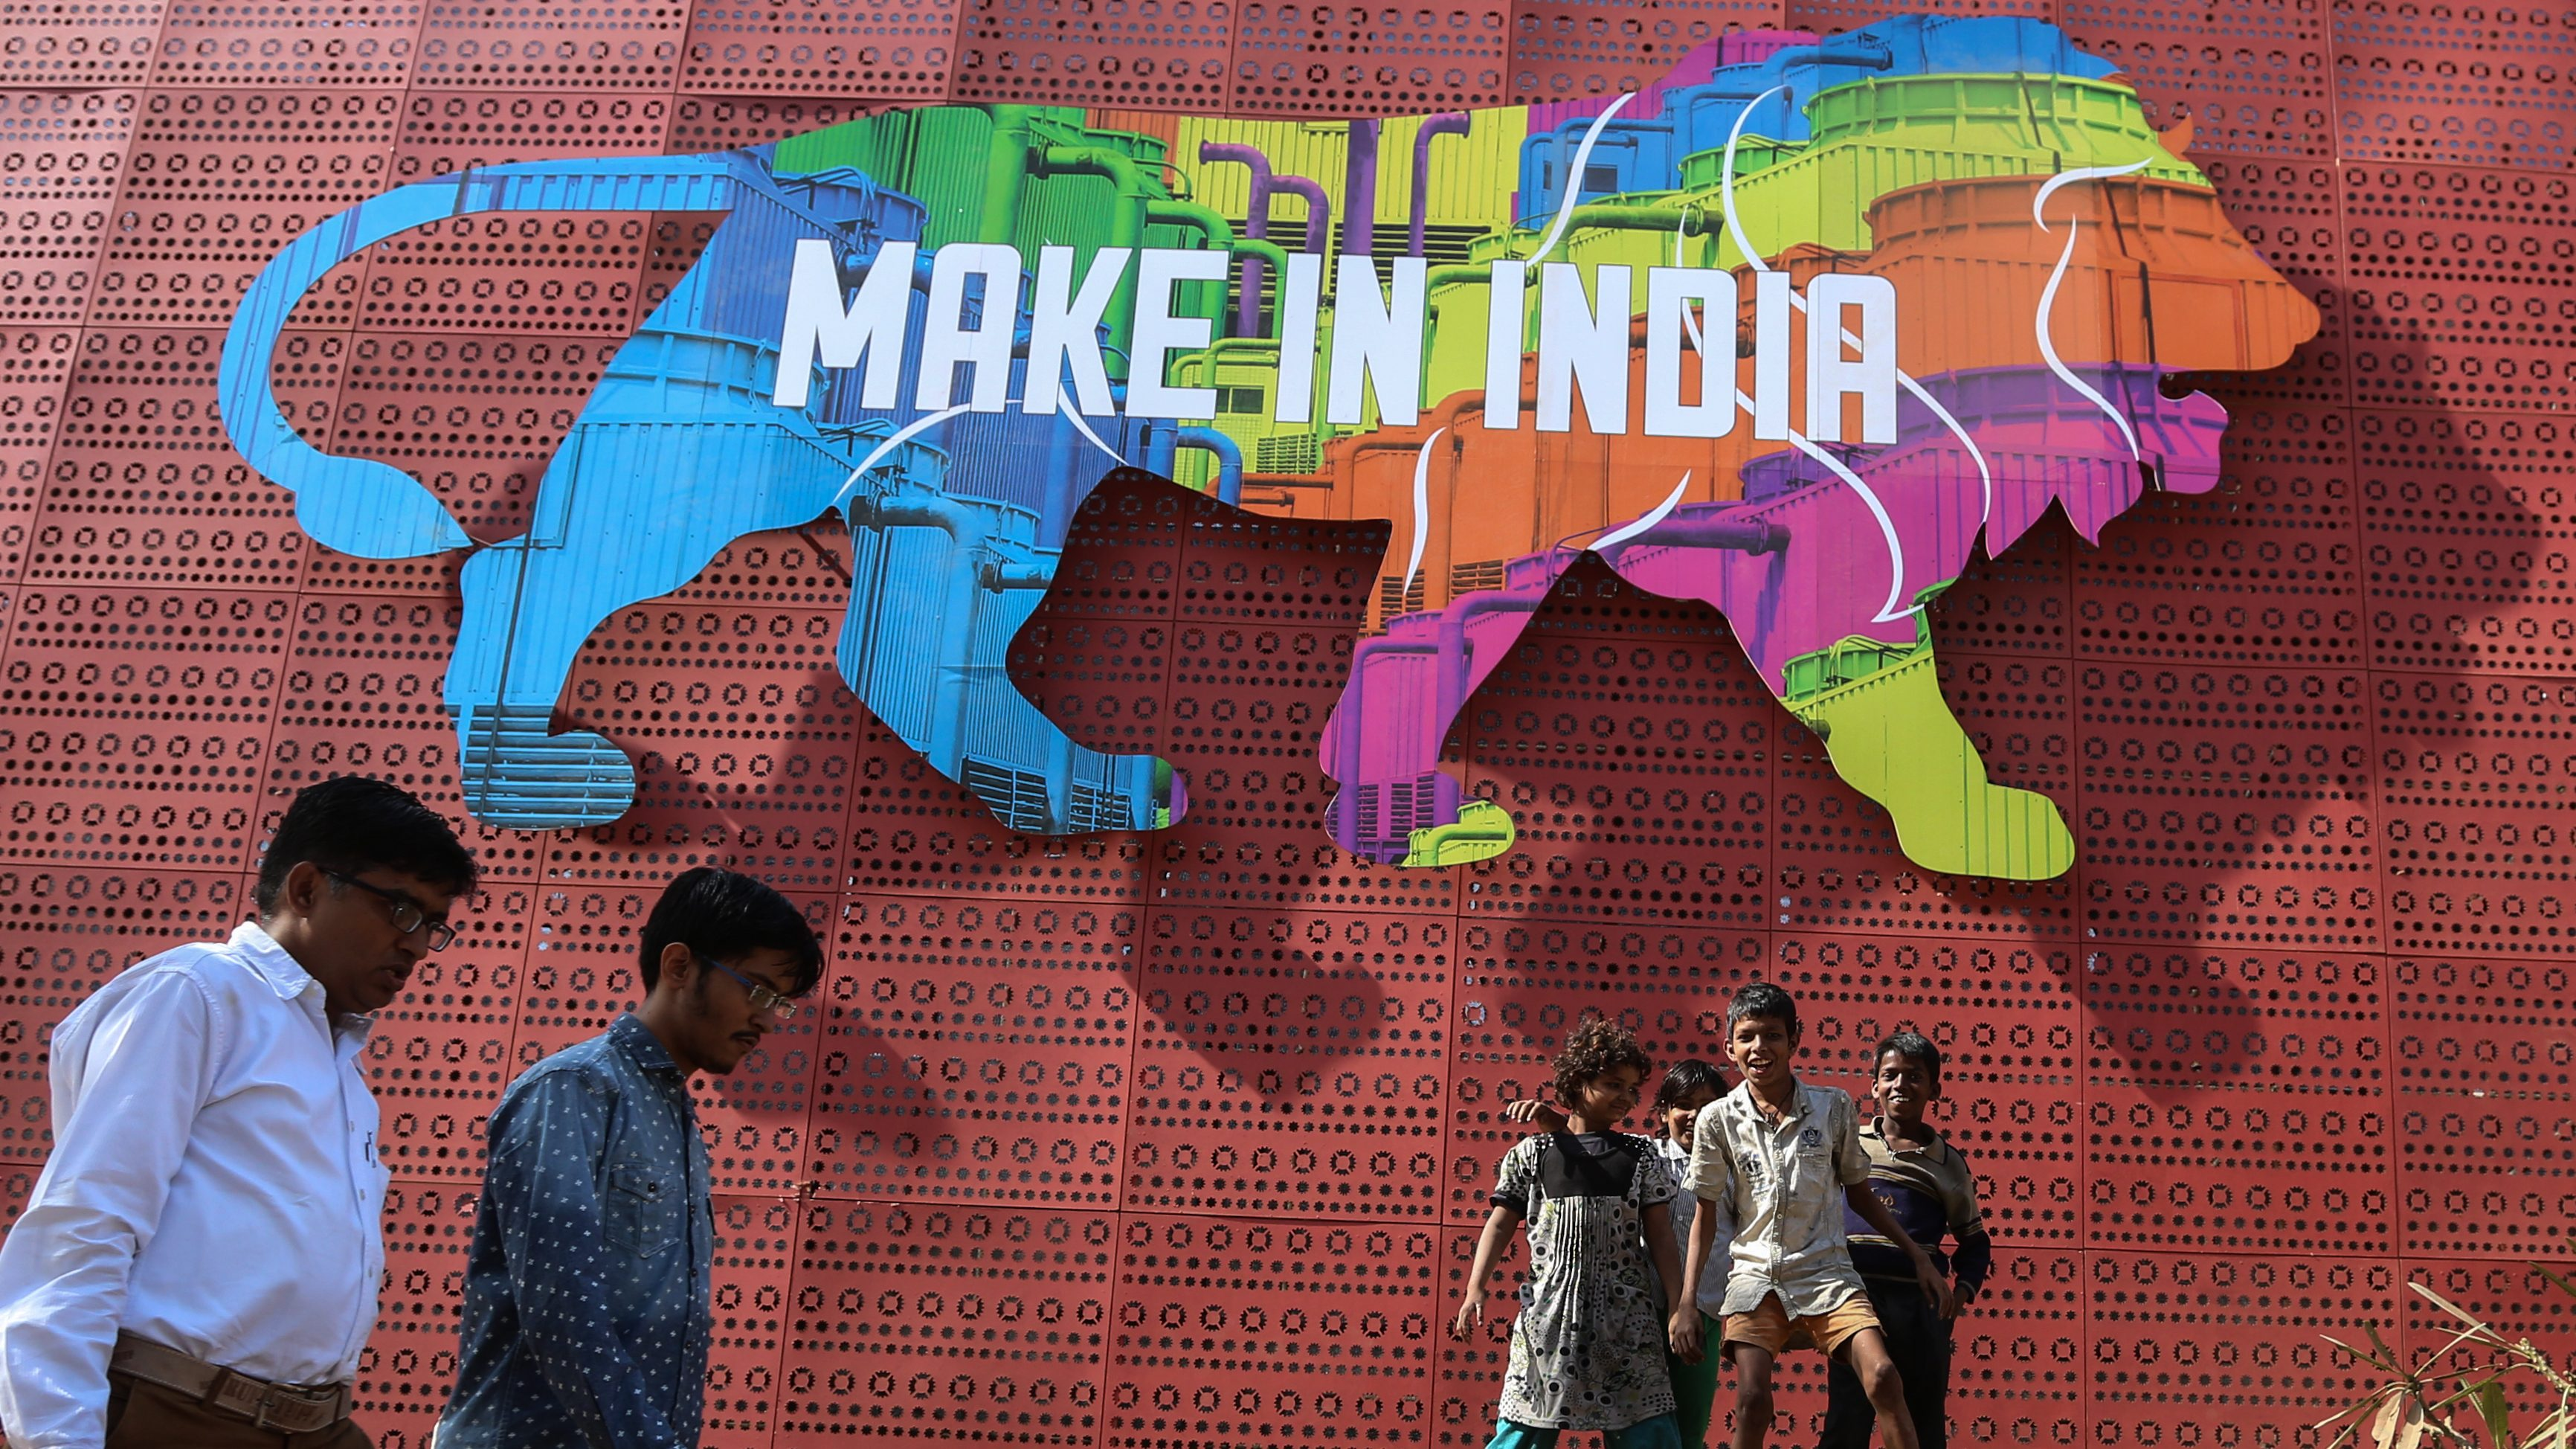 Indian people walk past as the slum childrens play around the 'Make in India' logo in Mumbai, India, 13 February 2016. The 'Make in India' campaign launched by the Indian Prime Minster Narendra Modi is aimed to attract investment and make the country a global manufacturing hub. The campaign aims to cut red bureaucracy and roll out the red carpet for investors through a string of measures that include easier investment regulations, better infrastructure and developing the workforce's skills. Mumbai is hosting 'Make in India' week from 13 to 18 February 2016.